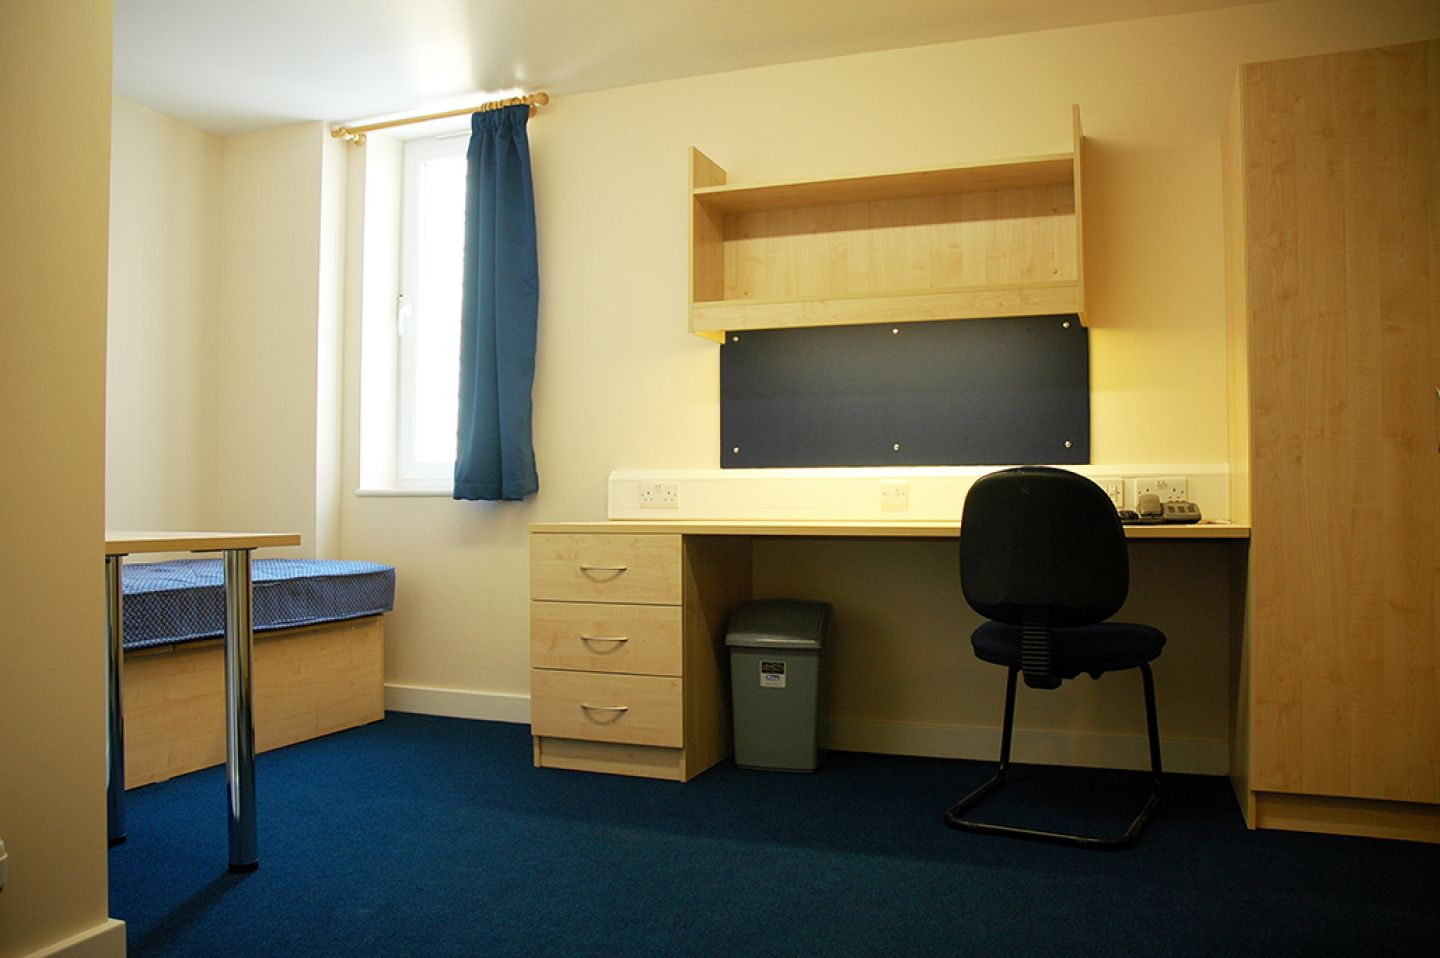 View of a studio room showing the single bed, small table, window and study area desk. The carpet and curtain are dark blue, with cream walls. The furniture is pale wood. The desk is wide, with a small chest of drawers, 4 plug sockets, pin board and overhead shelves.